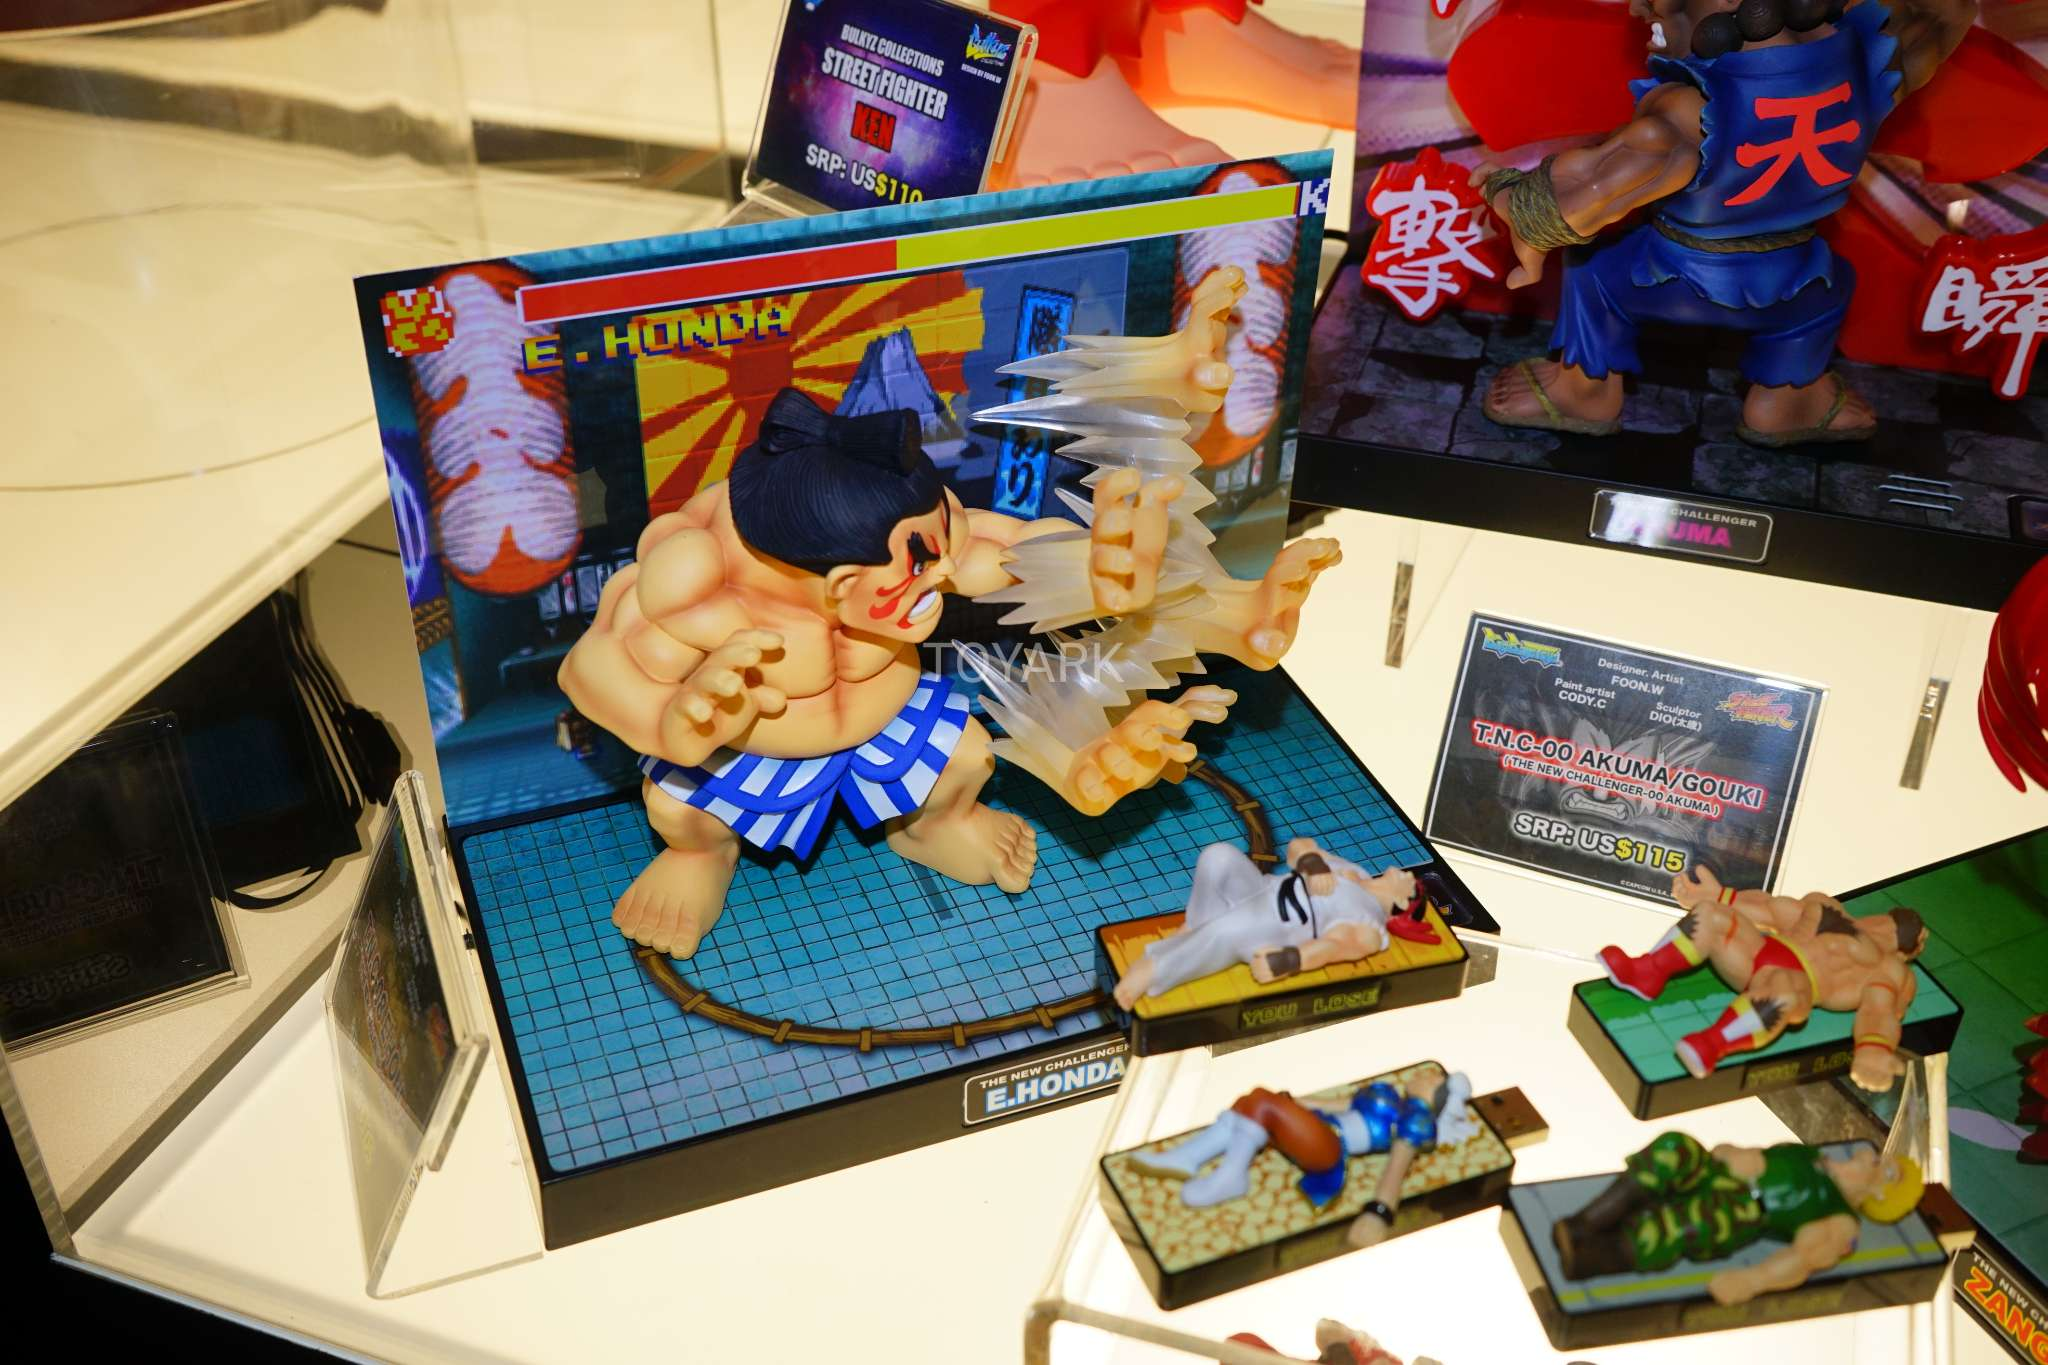 Boys Toys Big Game : Toy fair gallery blizzard and big boys toys at